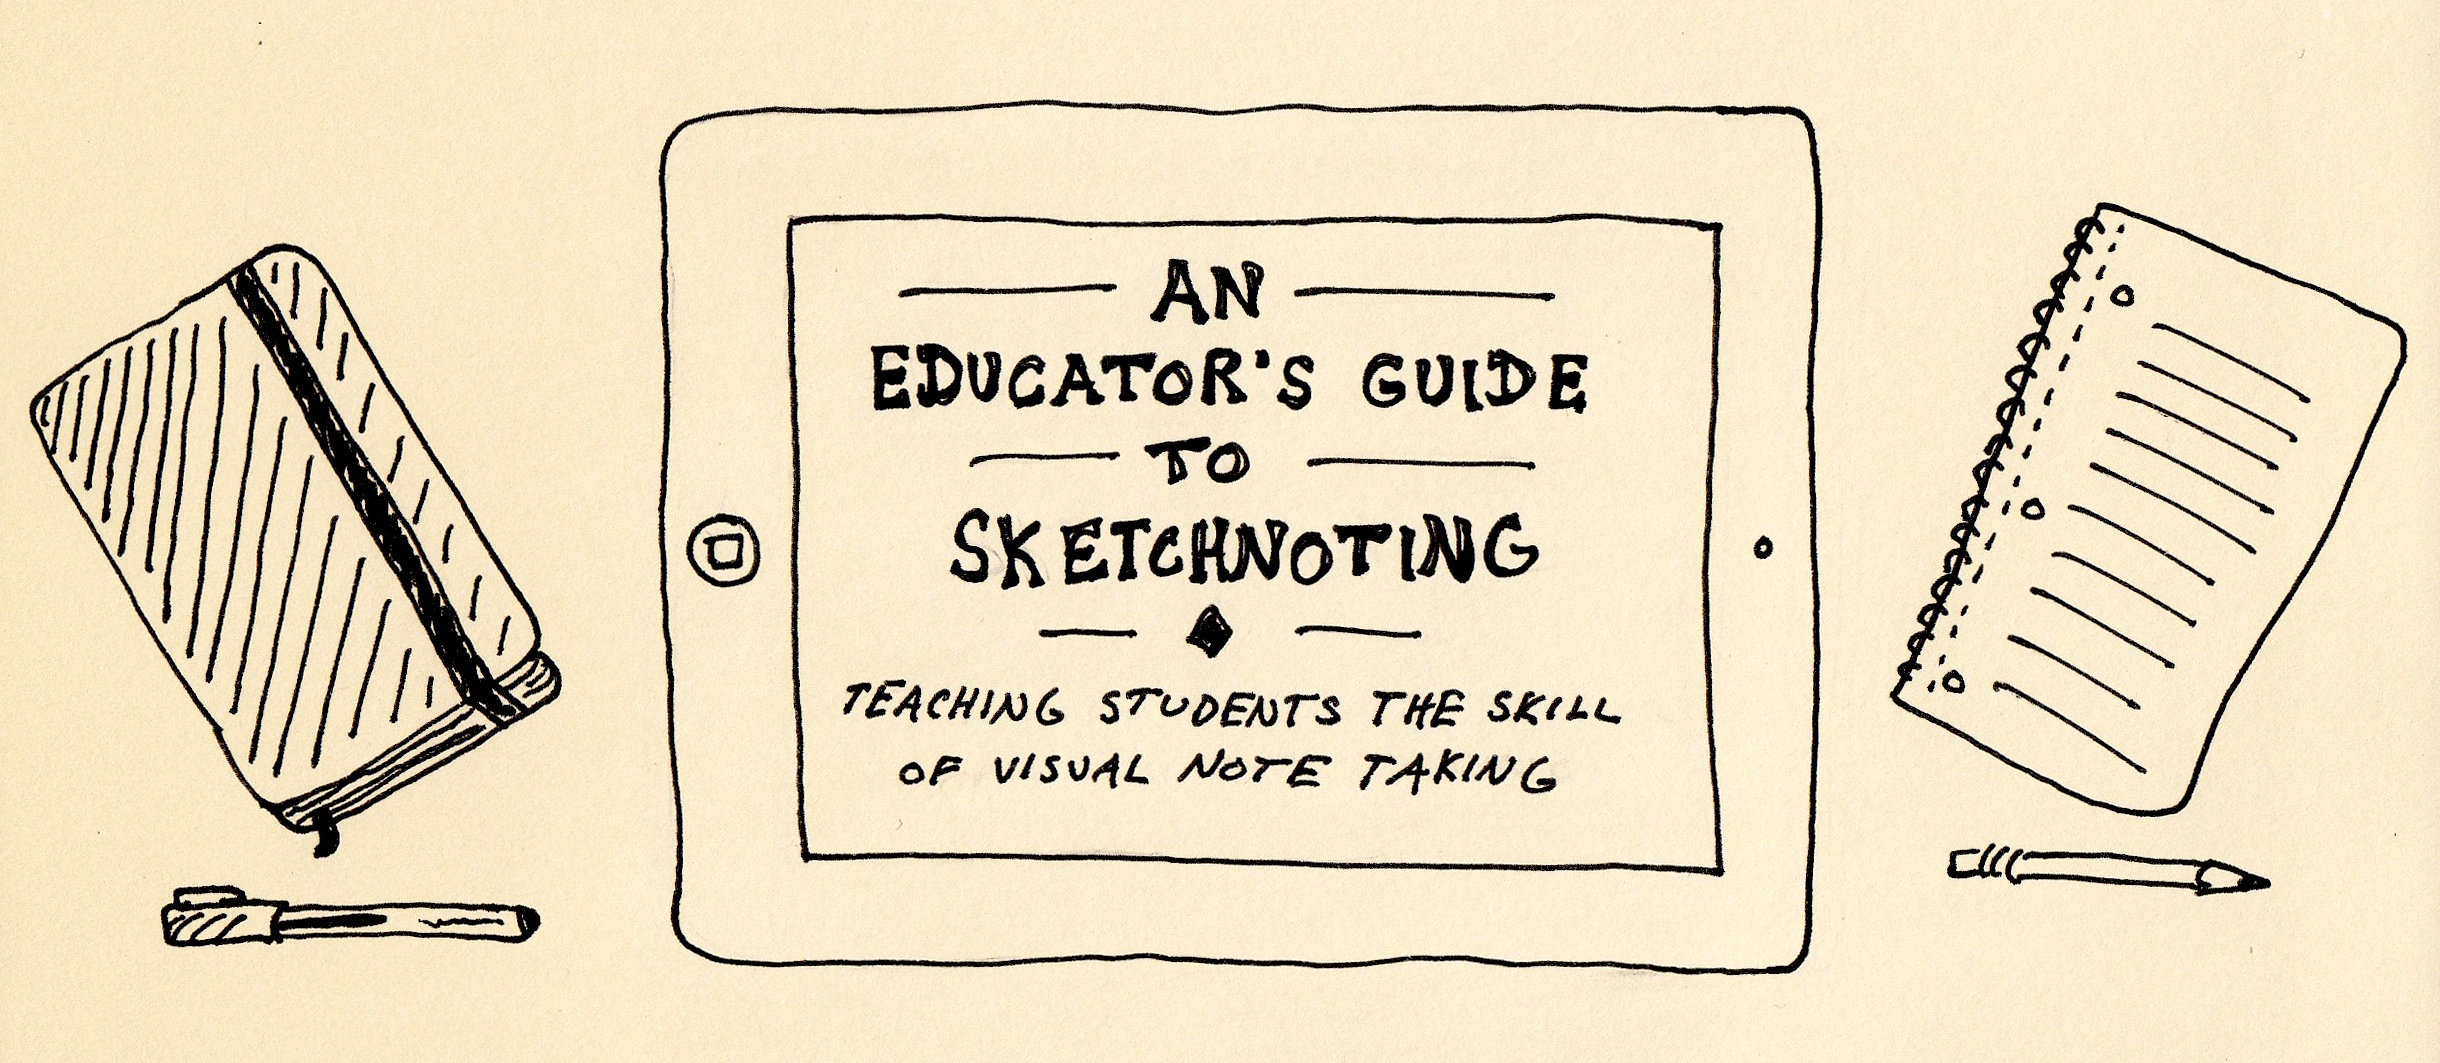 An Educator's Guide to Sketchnoting